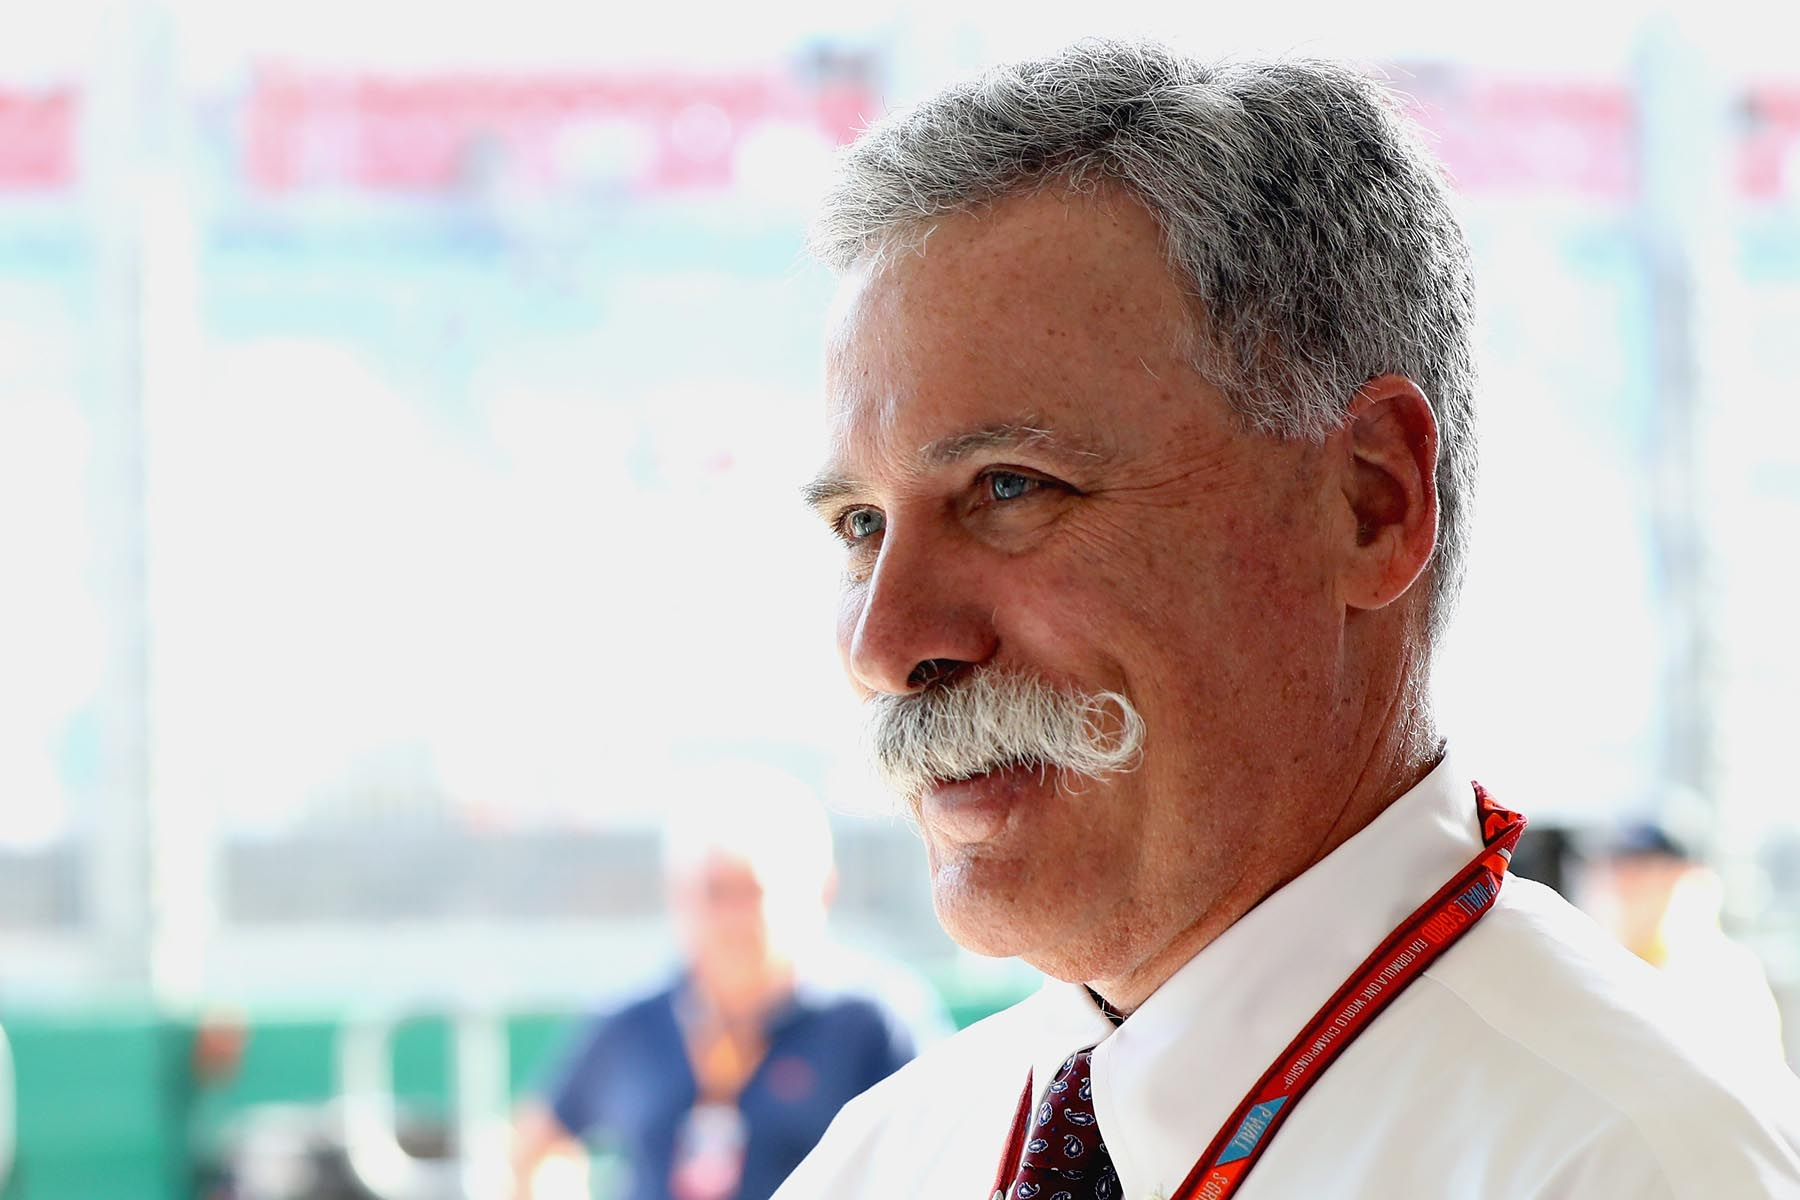 Chase Carey in the Red Bull Racing garage at the 2018 Australian Grand Prix.